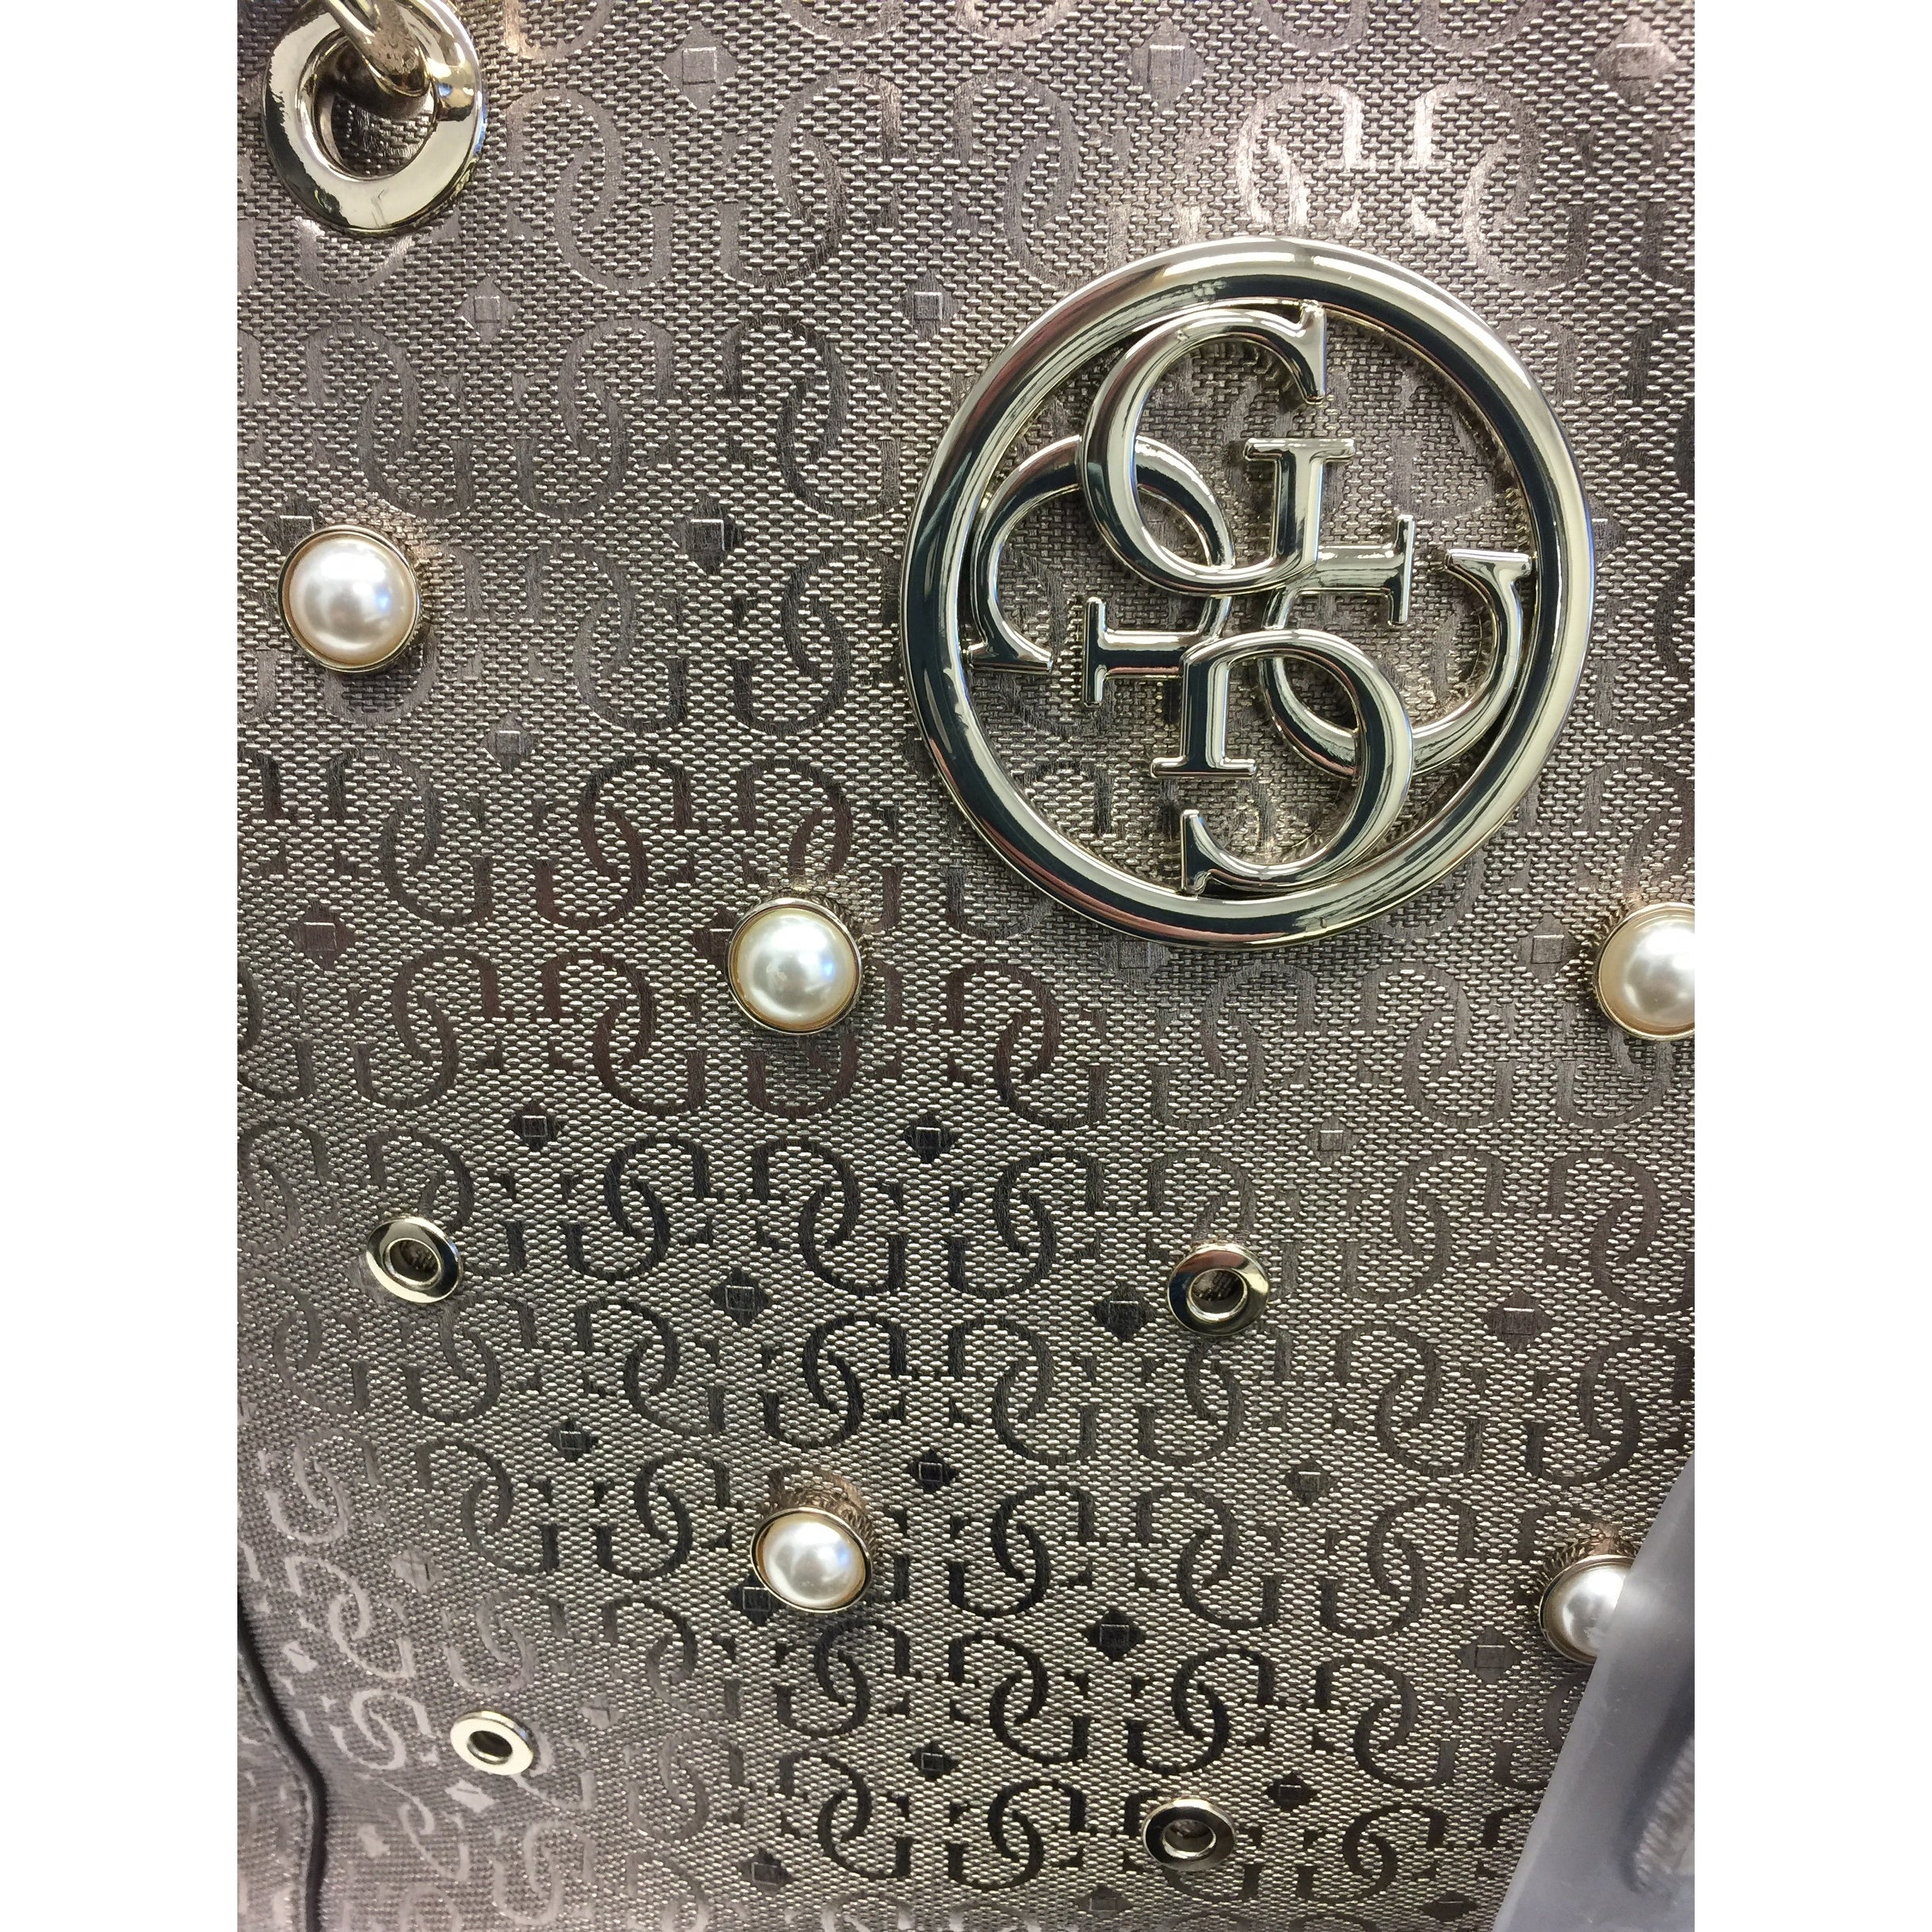 be2ed50d83f308 Shop GUESS Kamryn Signature Large Tote Bag Pewter - One Size - Free  Shipping Today - Overstock - 28457358